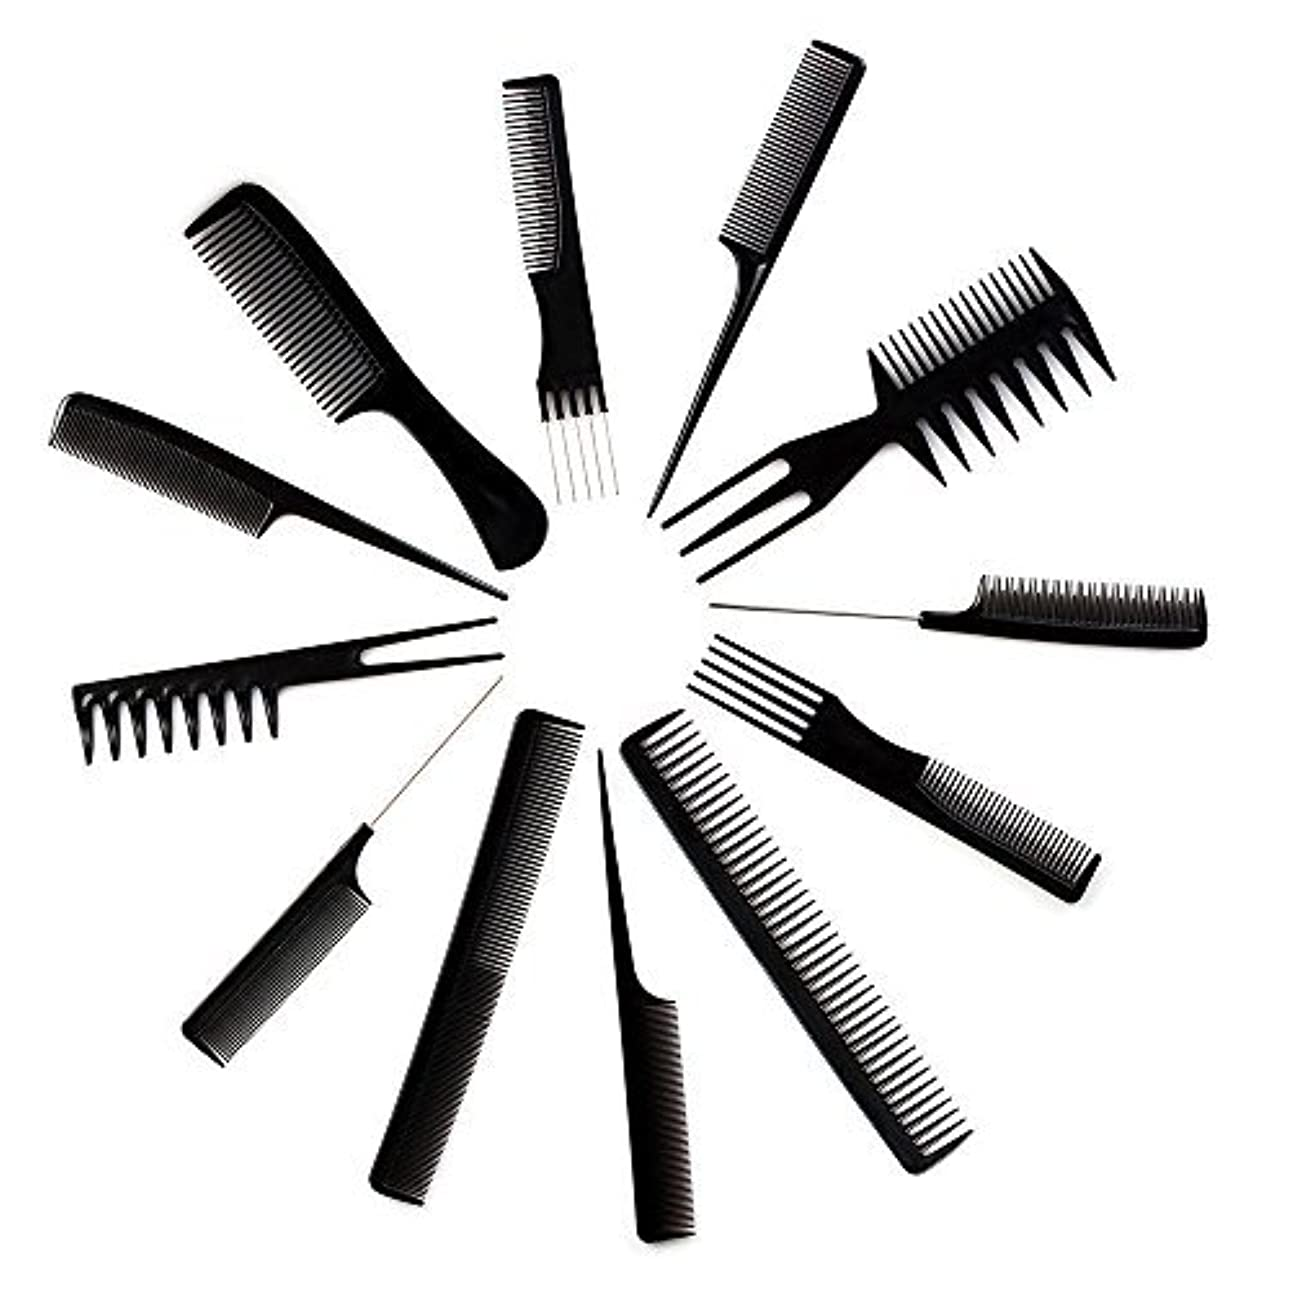 10pcs Black Professional Combs Hairdressing Hair Salon Styling Barbers Set Kit [並行輸入品]